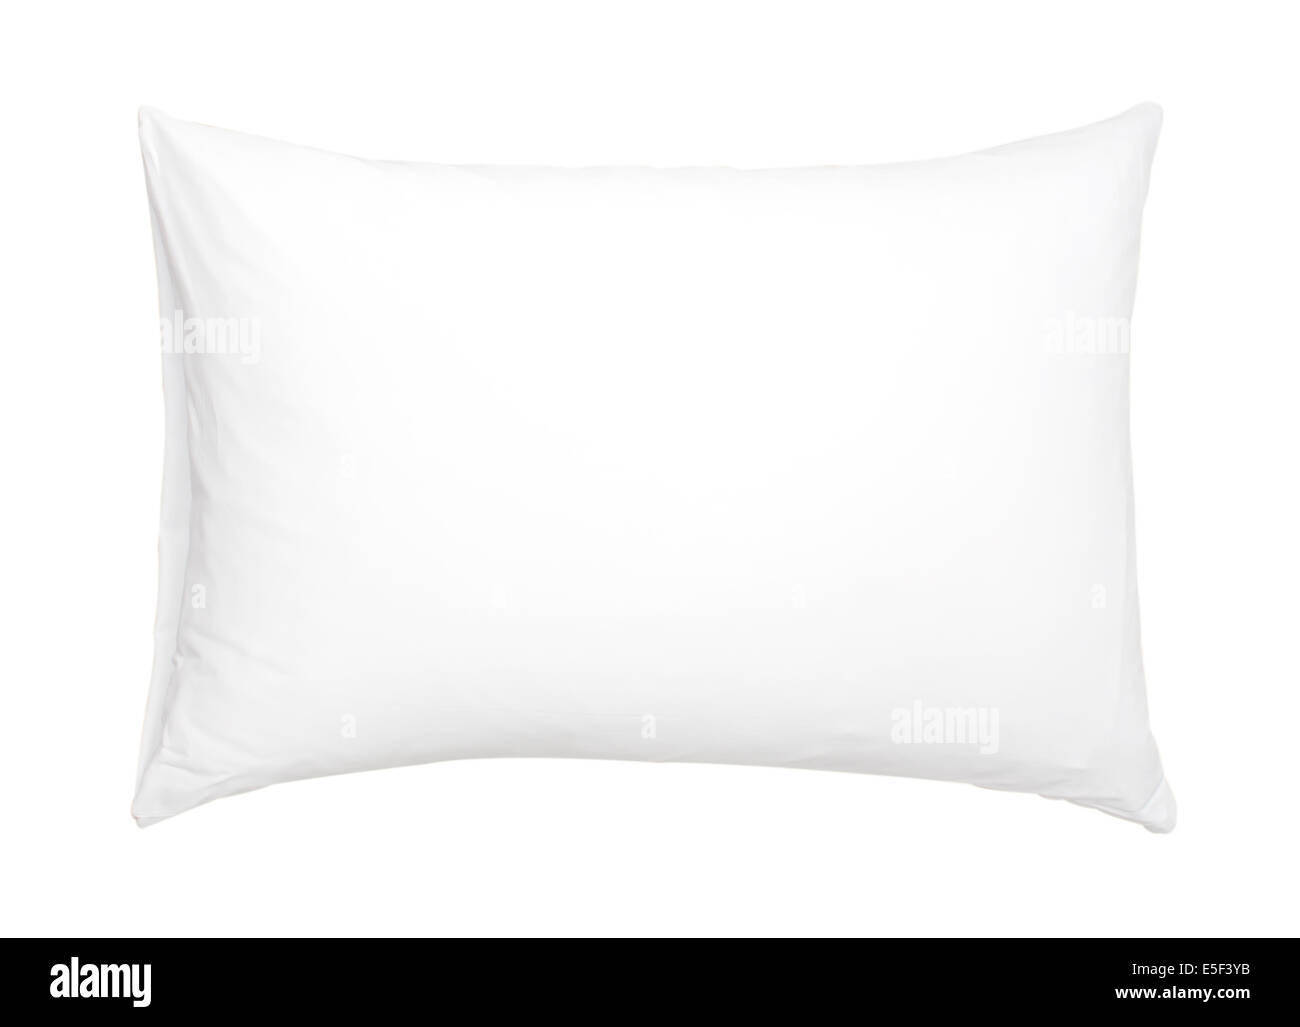 pillow with white pillow case on white background - Stock Image